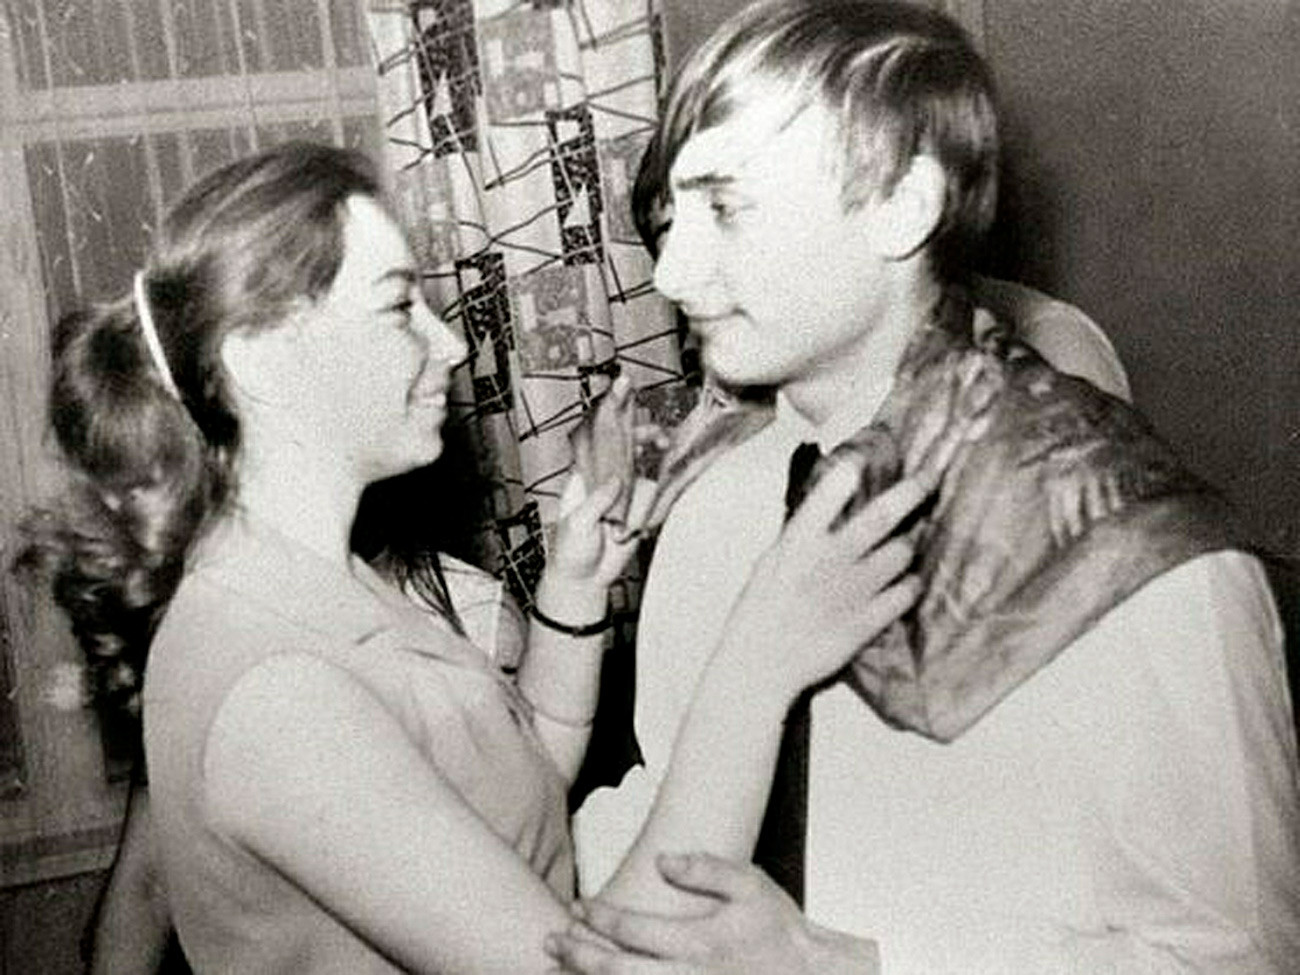 Putin is dancing with his classmate Elena during a party in St. Petersburg in 1970